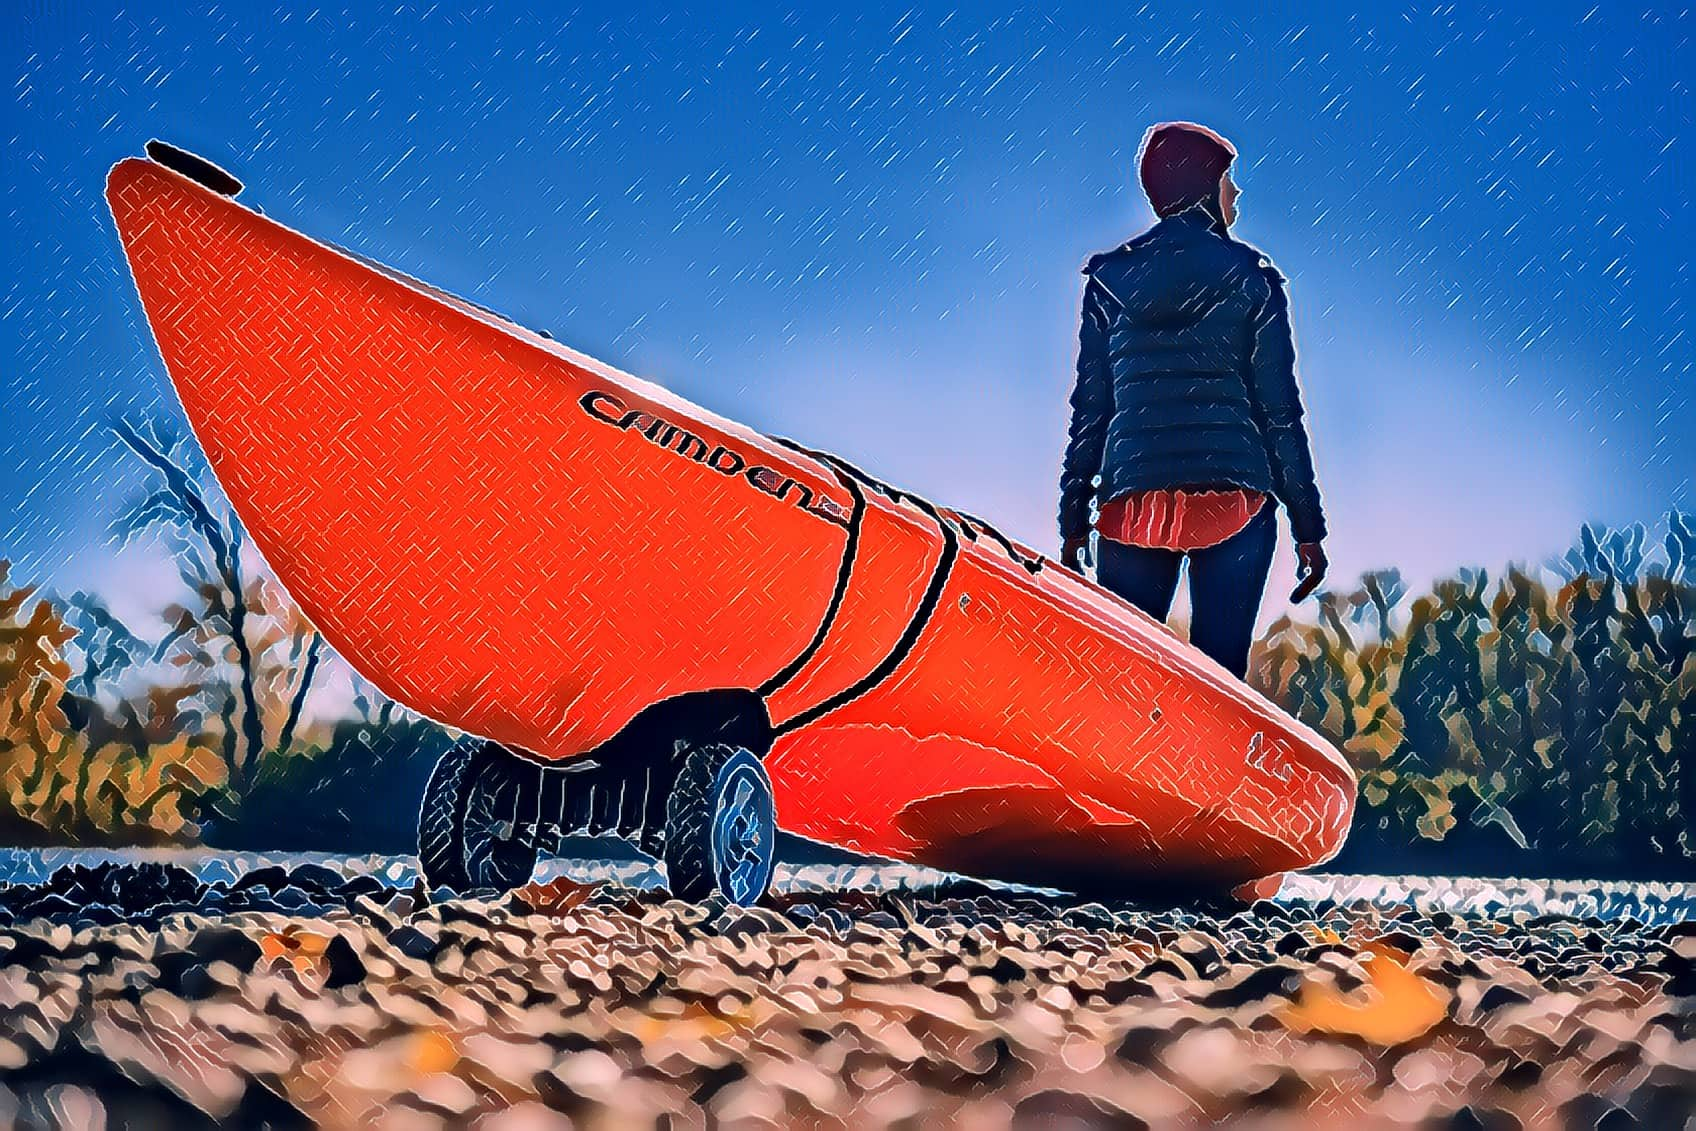 The Kayak Cart - The Kayak Cart went from word of mouth to a fully functional digital marketing platform in what felt like instantaneously.